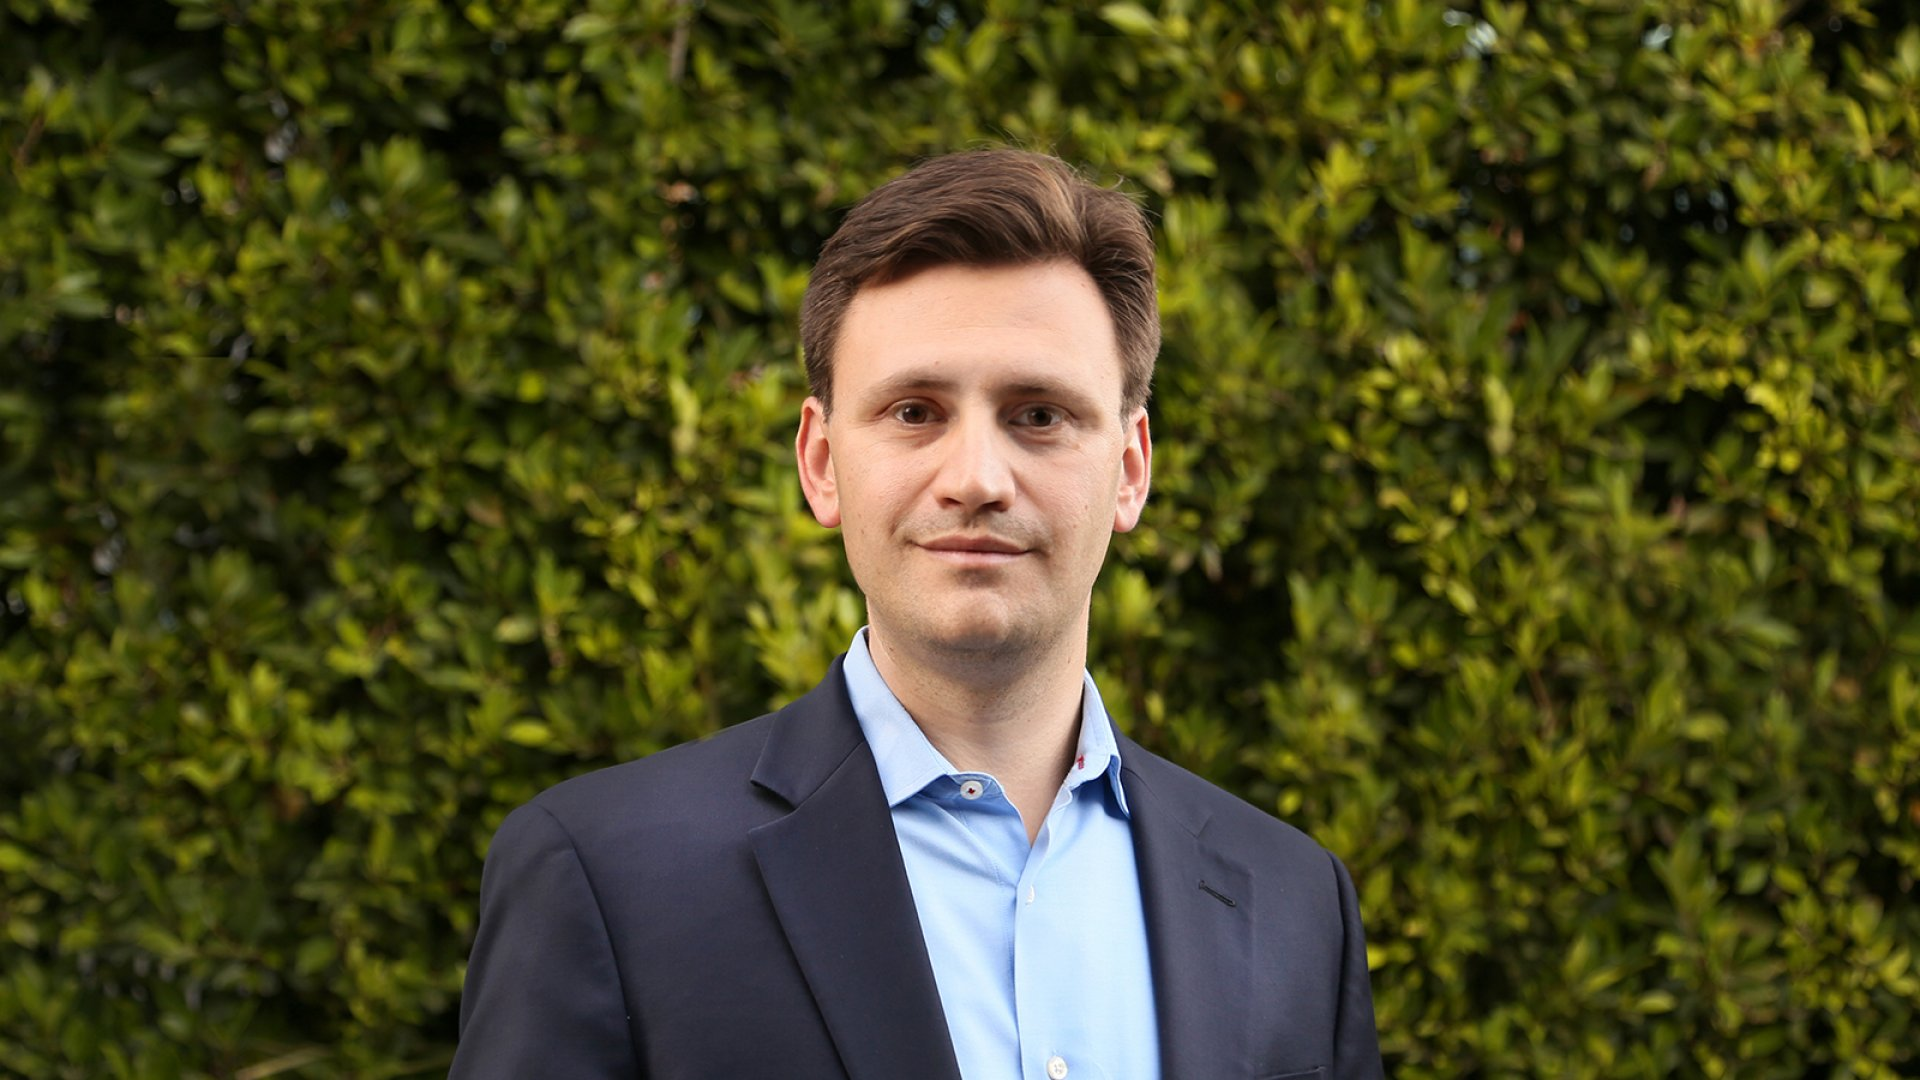 Andrei Cherny, the co-founder and chief executive of Aspiration.